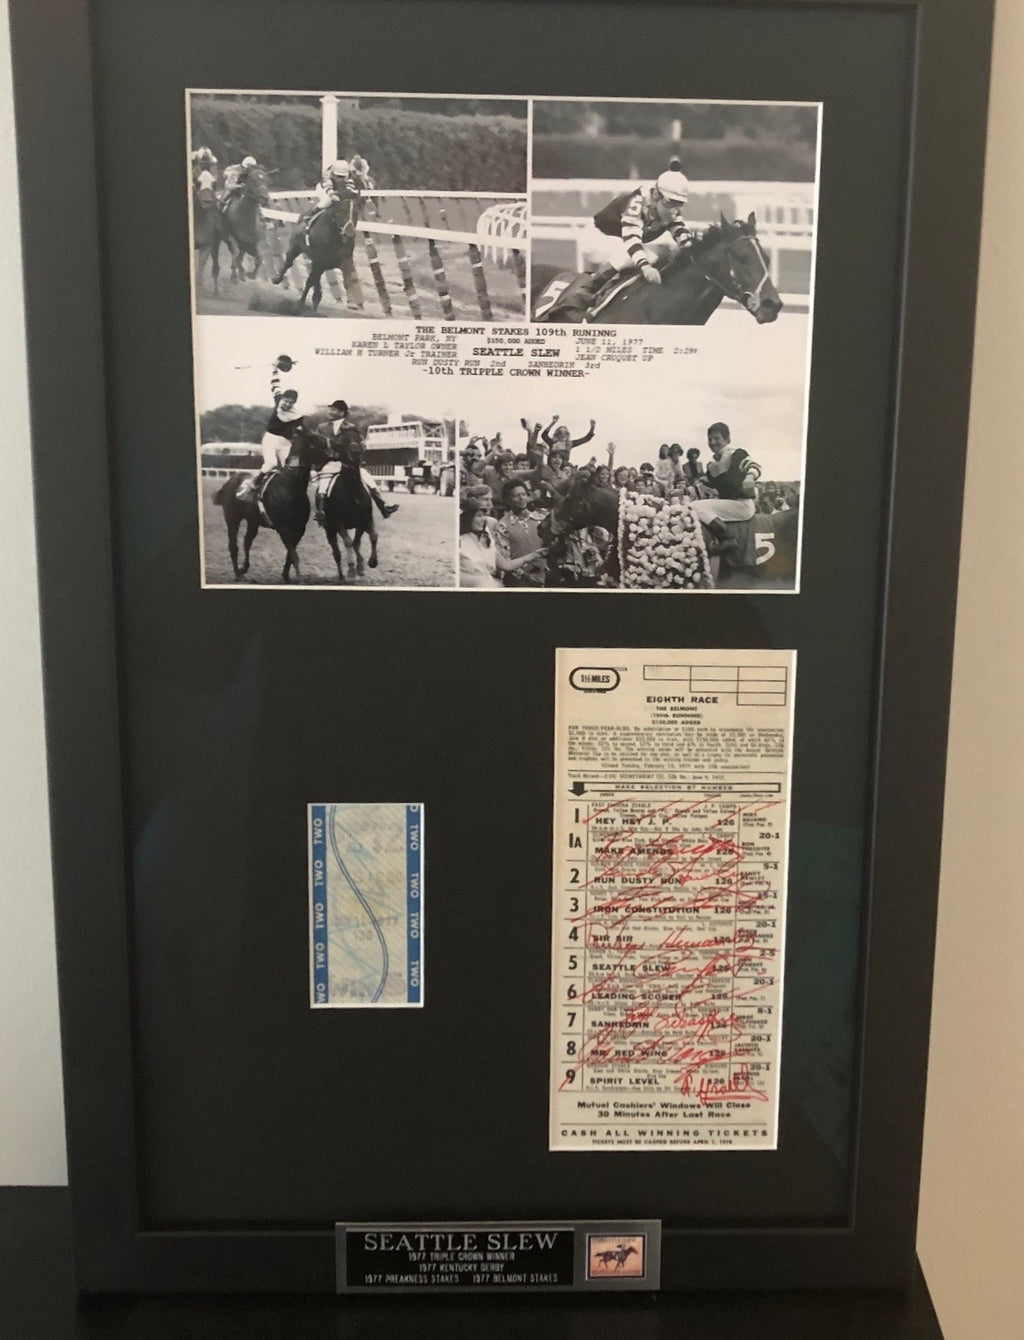 SEATTLE SLEW 1977 TRIPLE CROWN UNCASHED TICKET, AUTOGRAPHED PROGRAM AND FINISH LINE PHOTO IN A PROFESSIONAL CUSTOM MADE FRAME